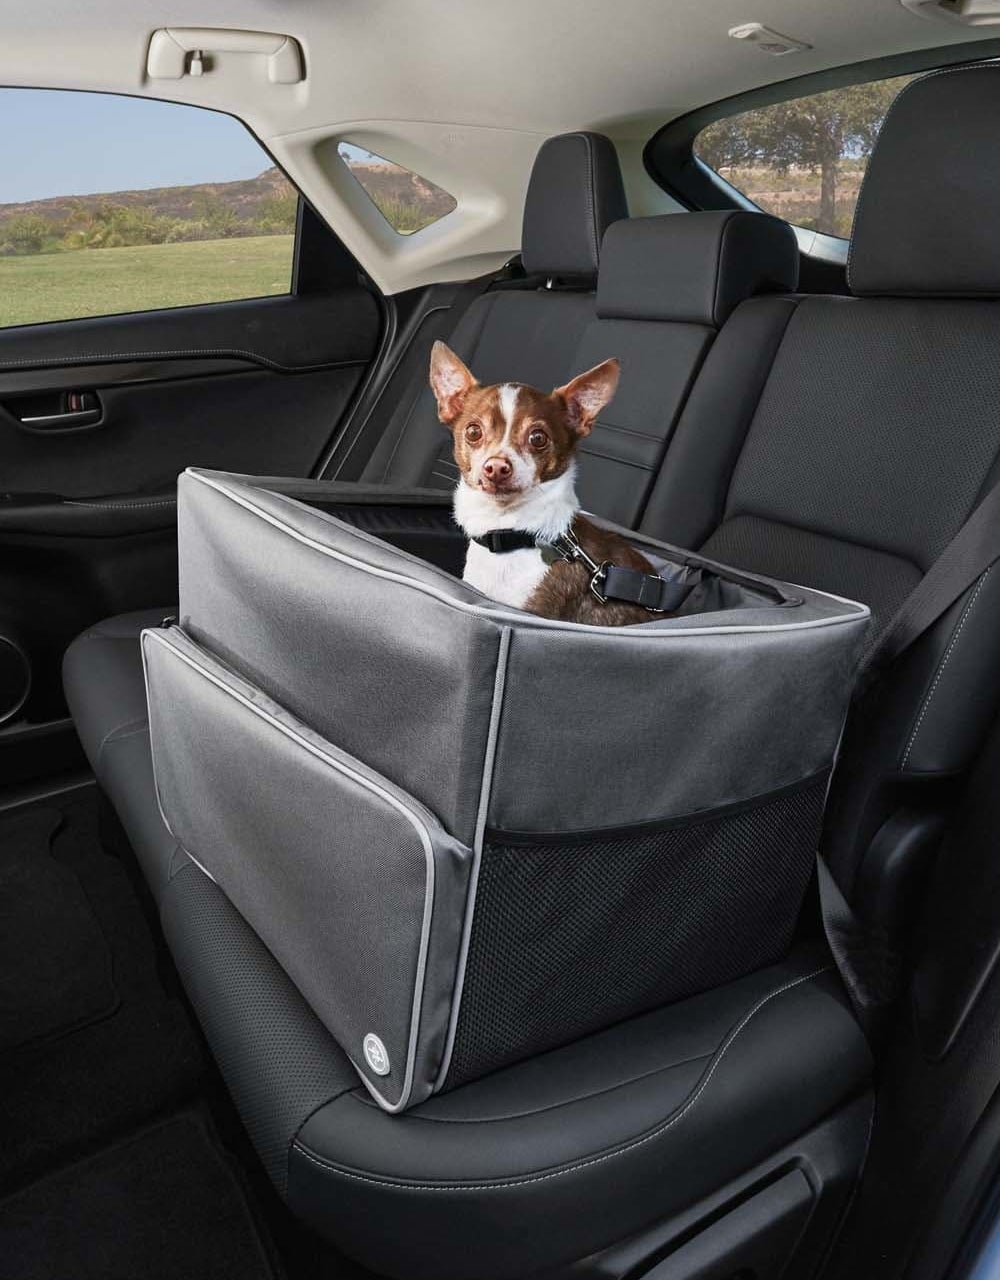 A small dog uses the gray booster seat in the back seat of an SUV